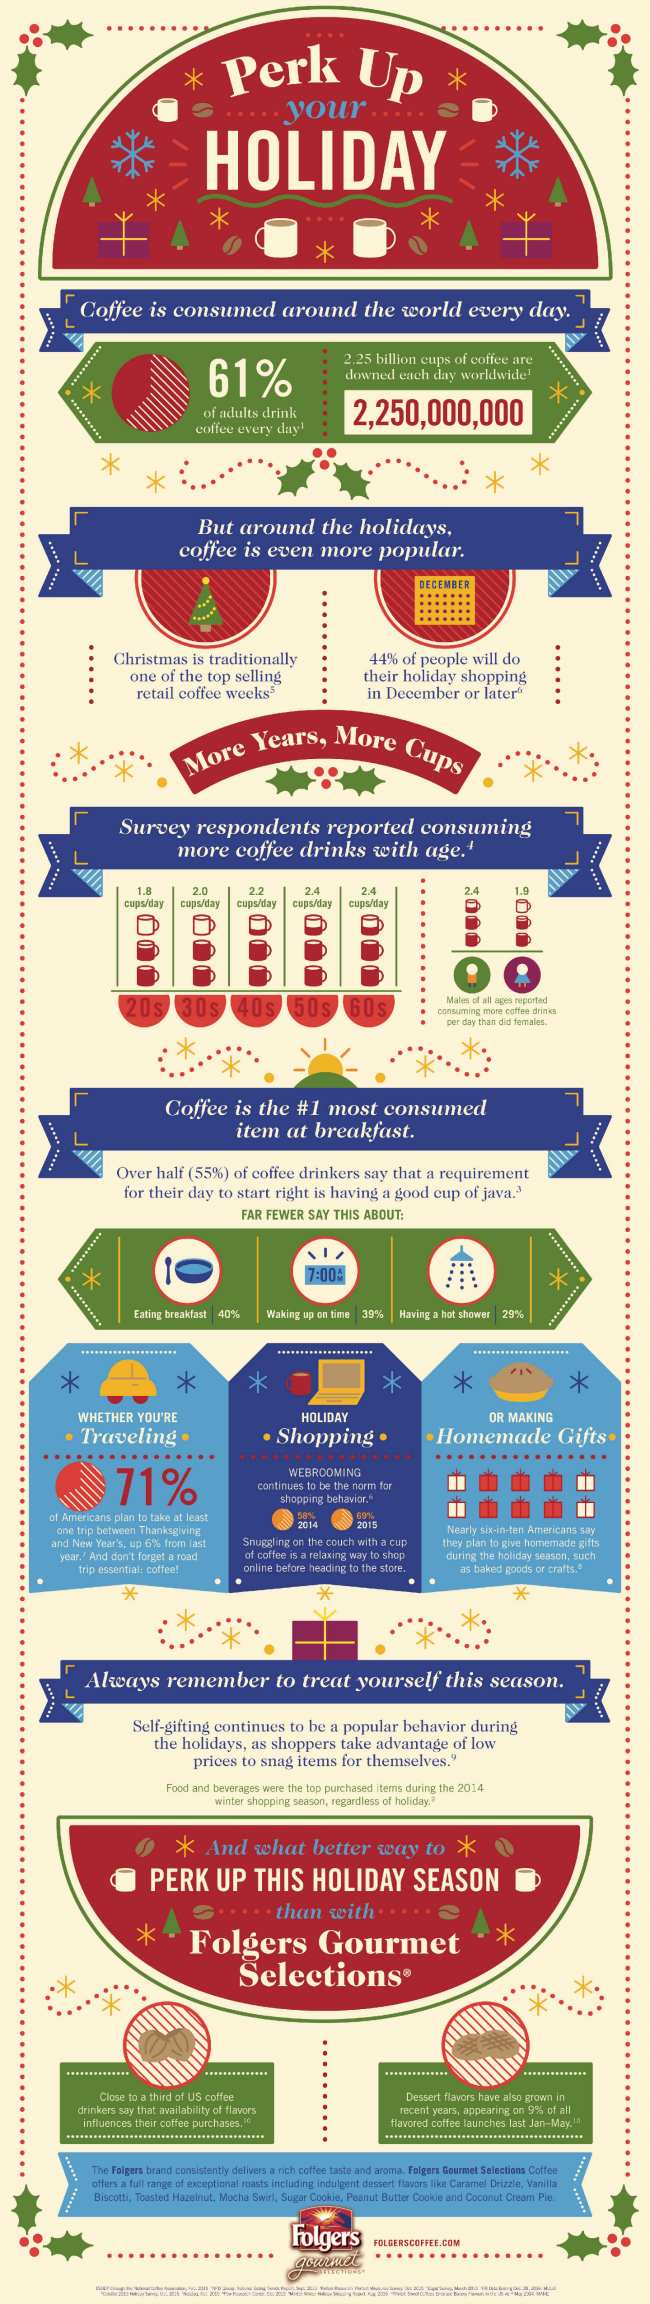 Perk Up Your Holiday with Folgers Infographic